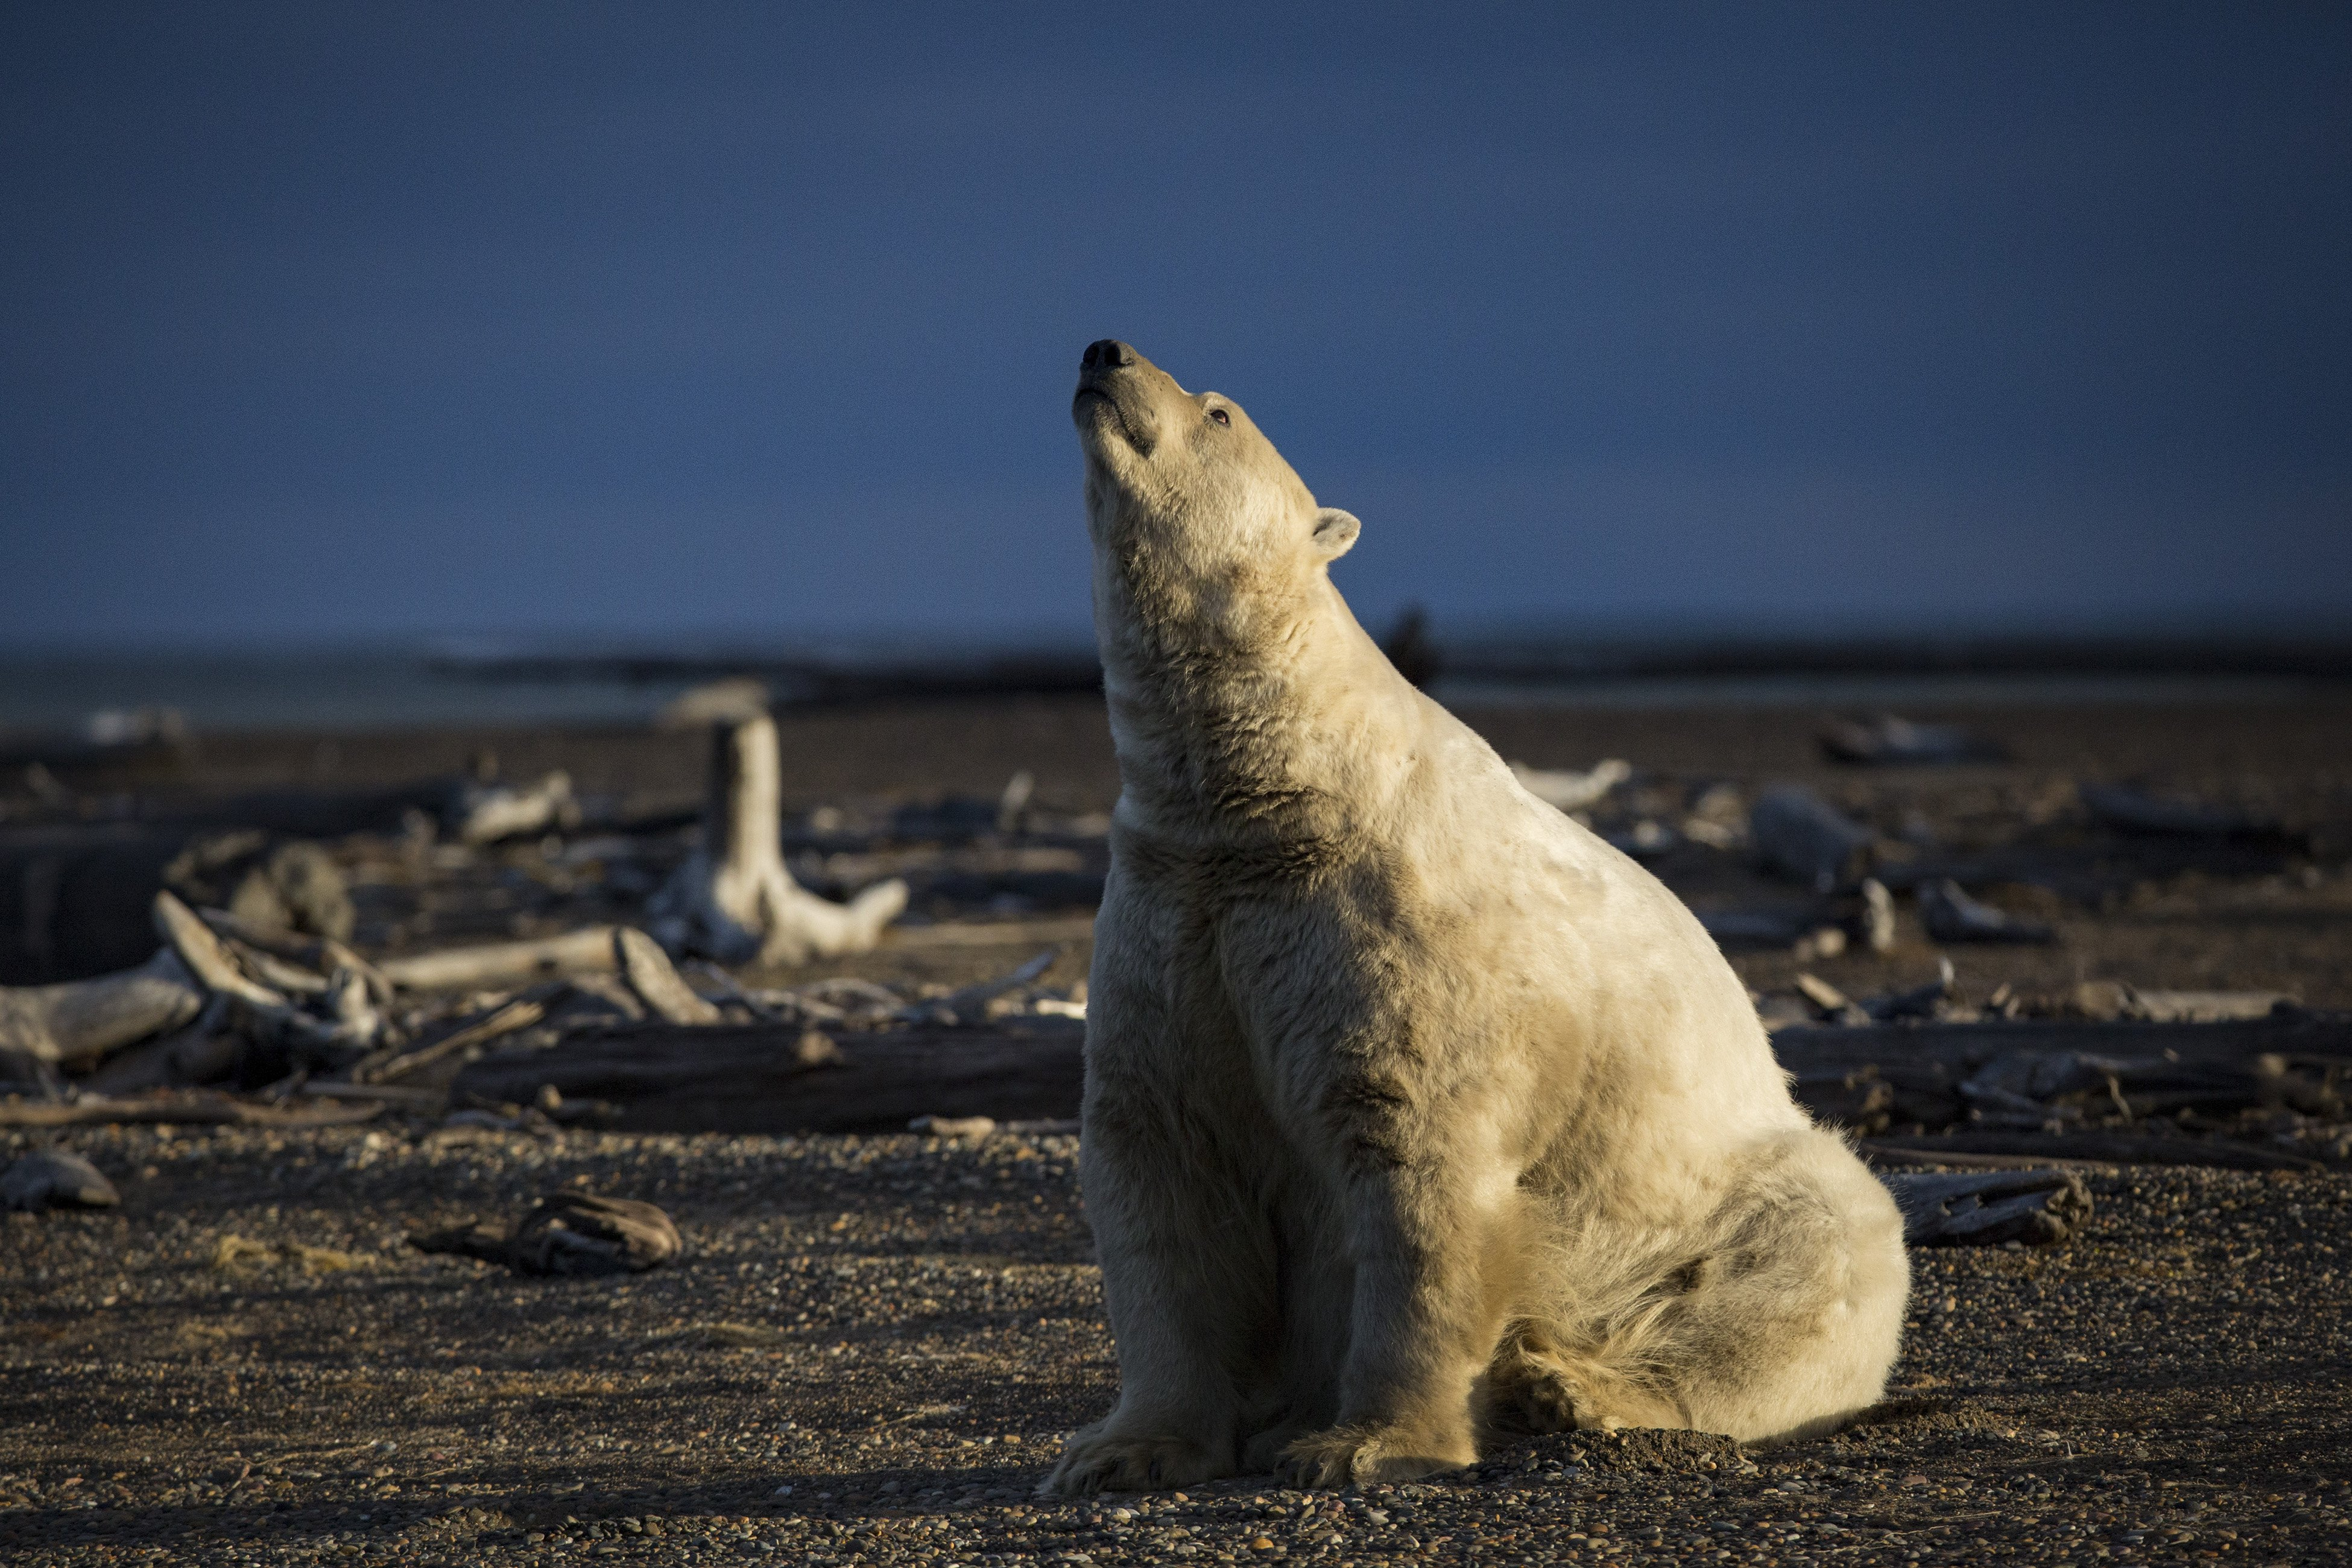 A polar bear in Kaktovik, Alaska, Sept. 11, 2016. Polar bears roam the town during the fall as climate refugees, on land because the sea ice they rely on for hunting seals is receding. (Josh Haner/The New York Times)